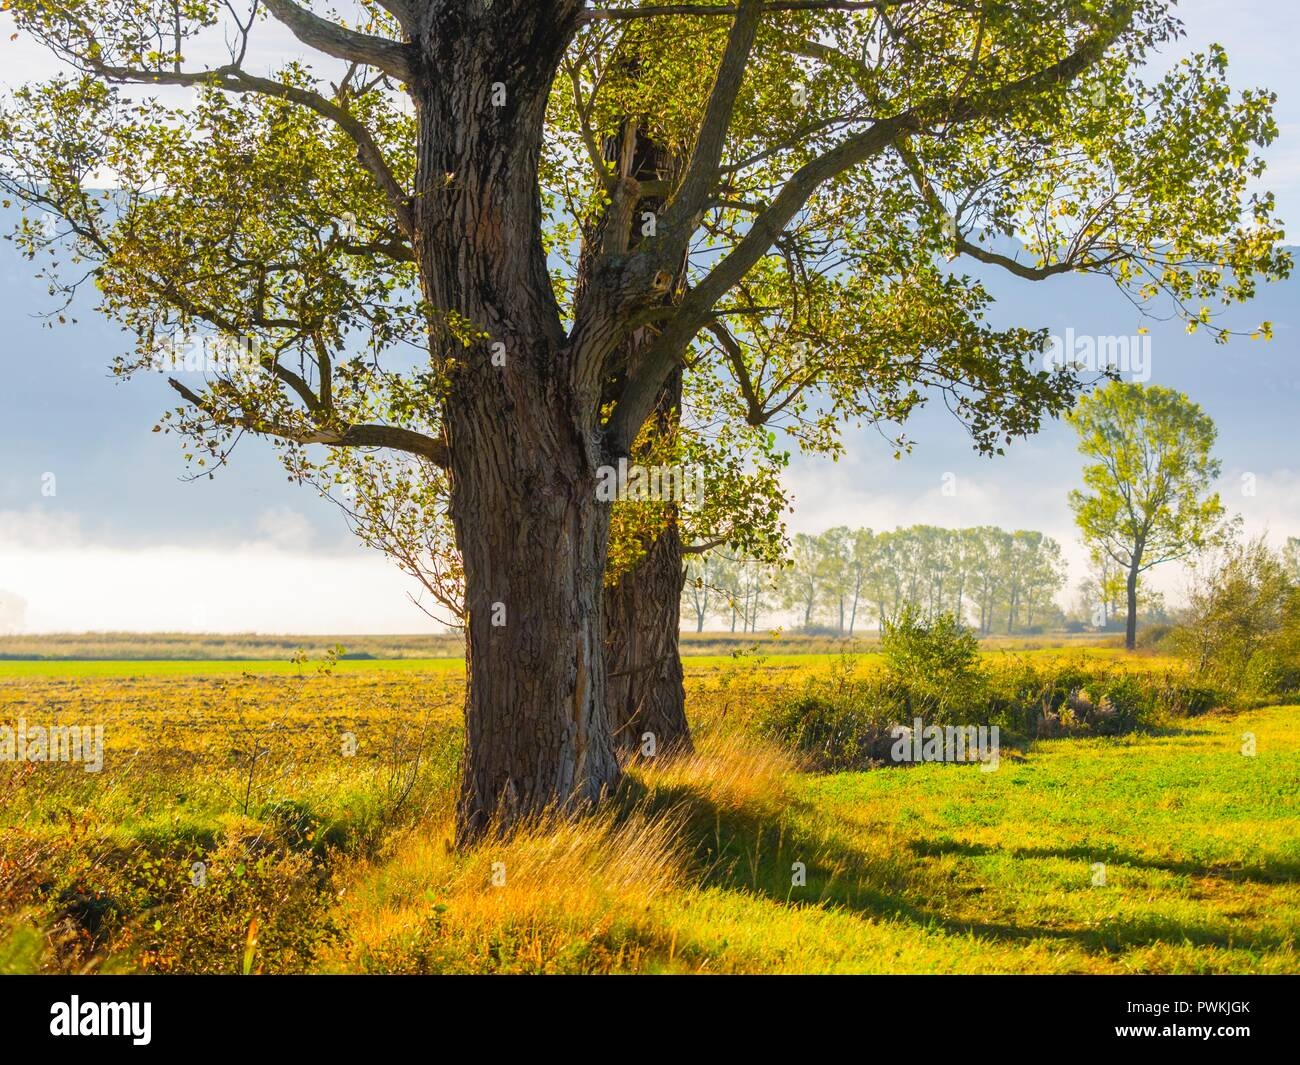 Morning country-side landscape - Stock Image